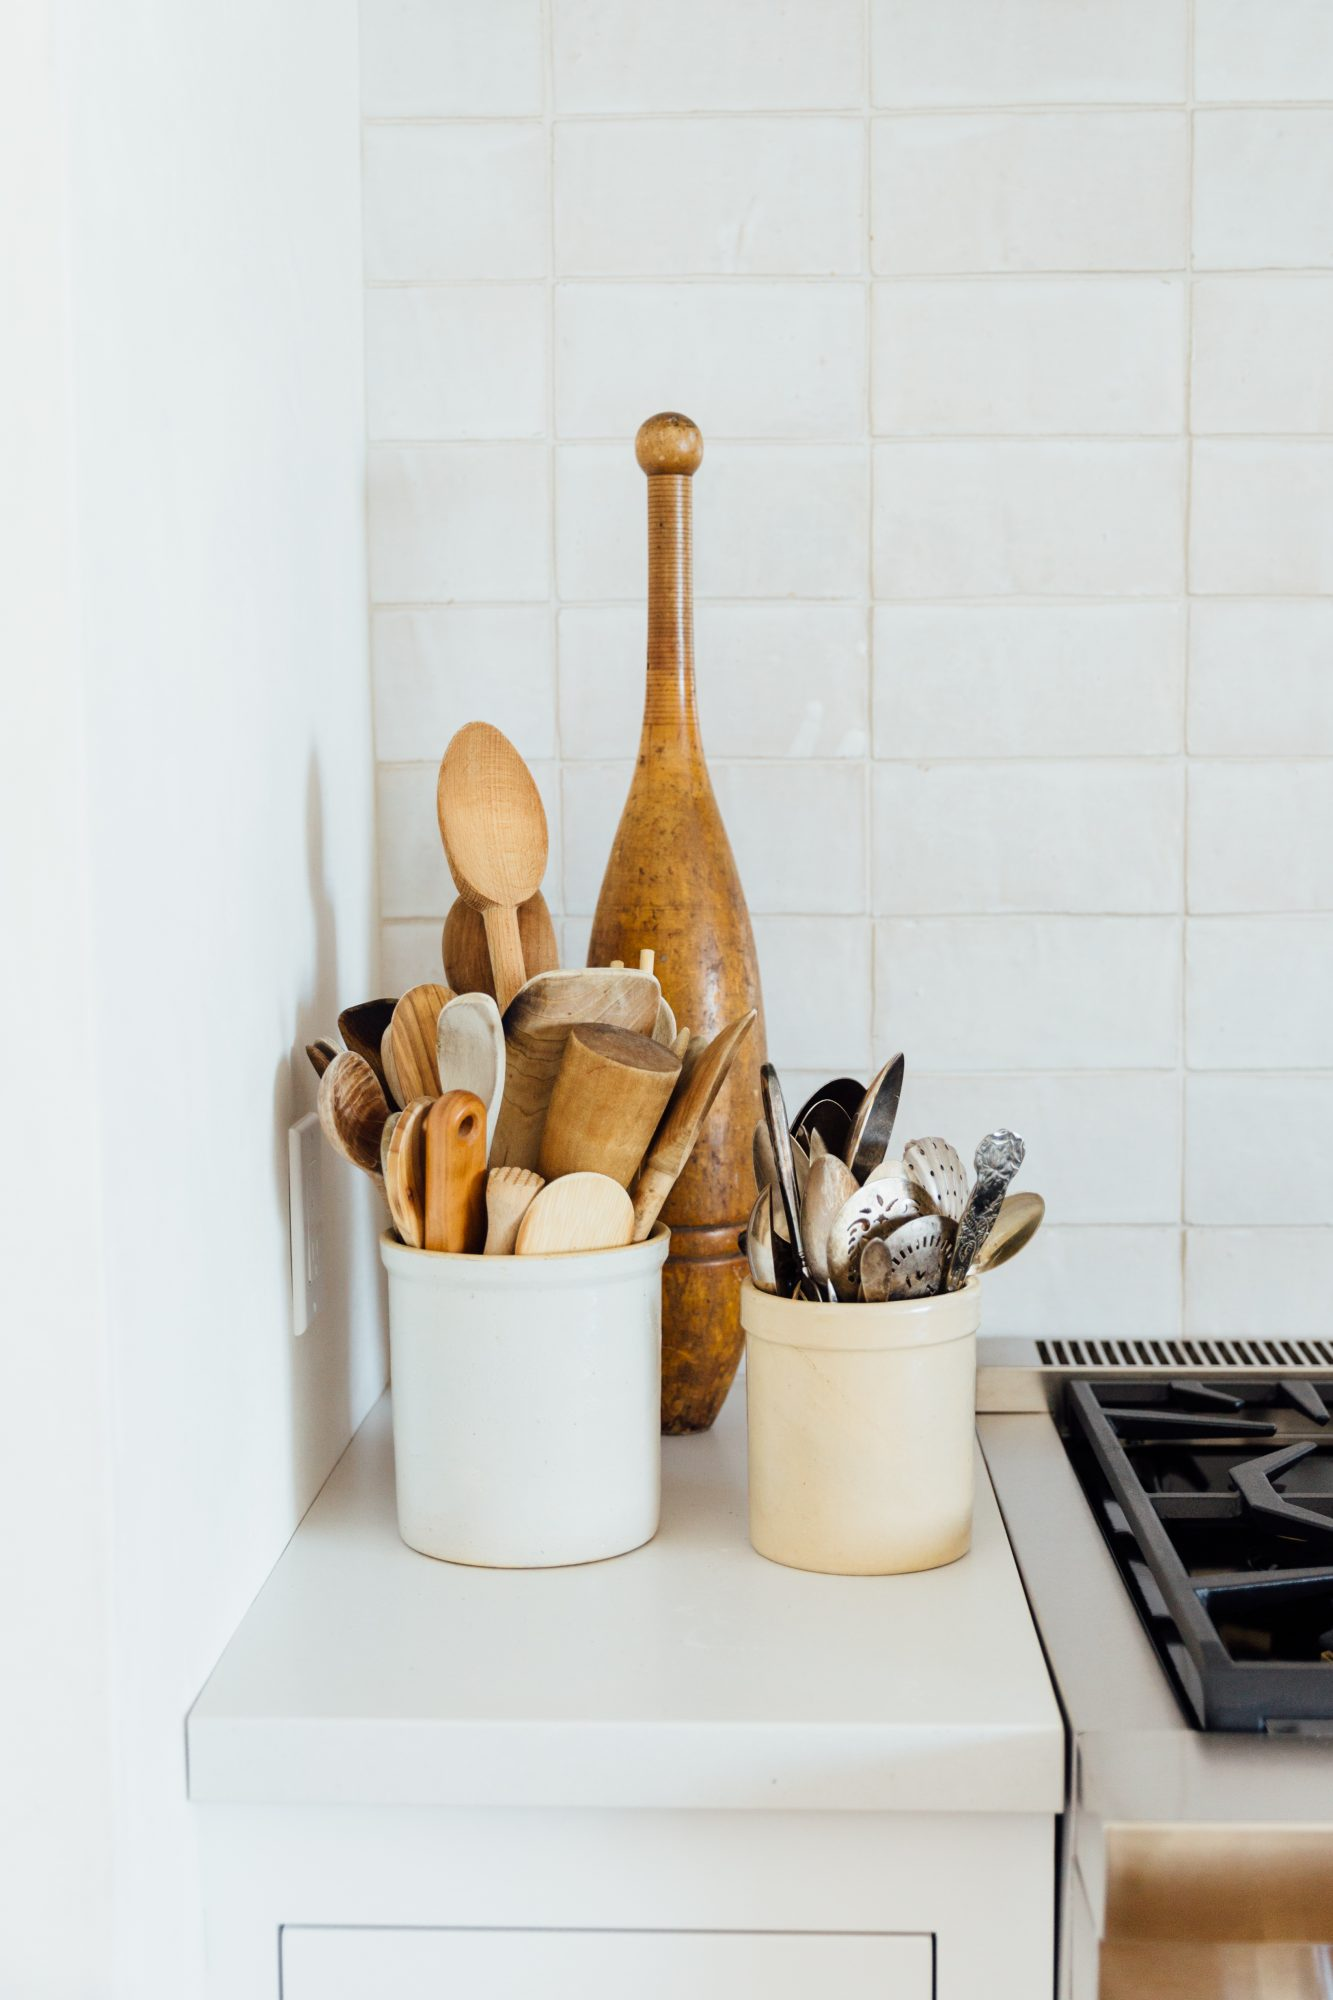 Kitchen Countertop Styling Crocks and Canisters